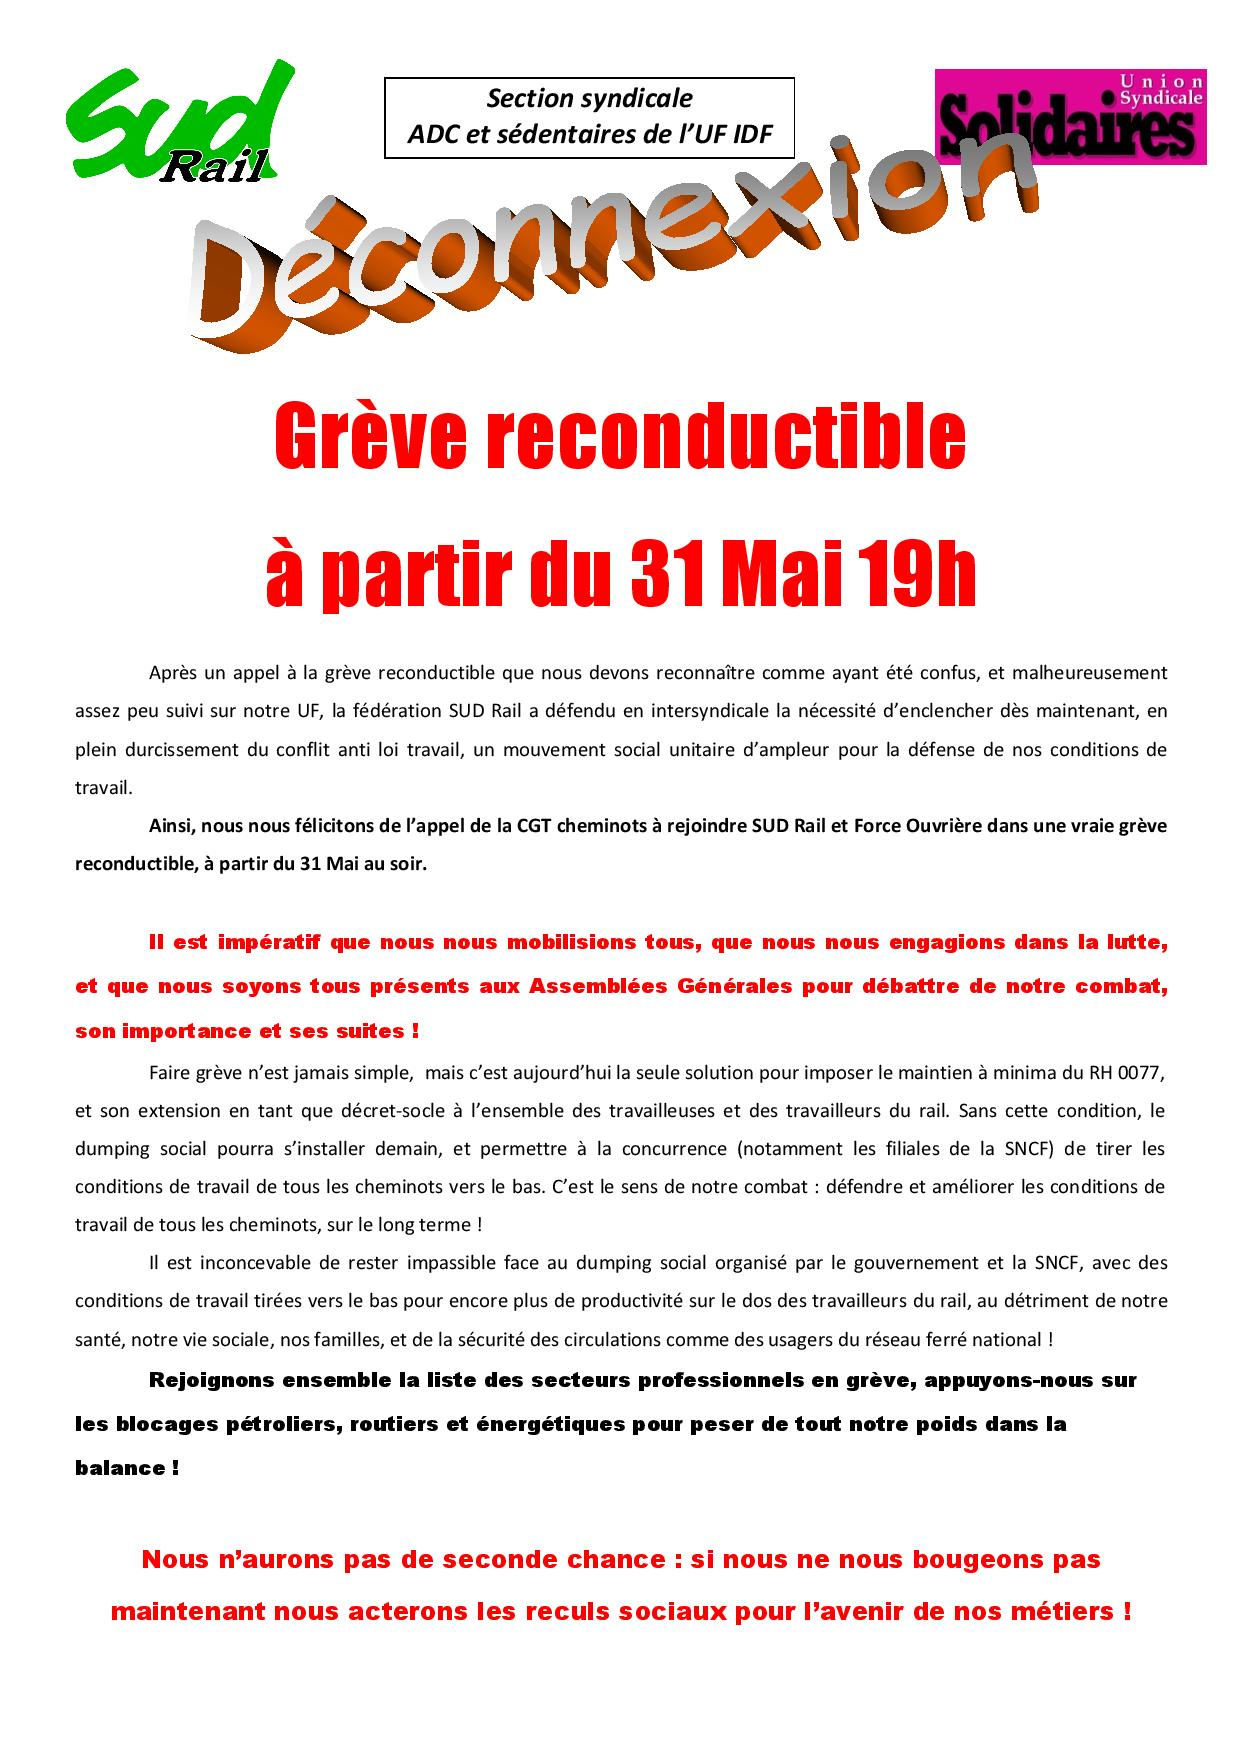 greve reconductible UF IDF 31-05-2016-page-001